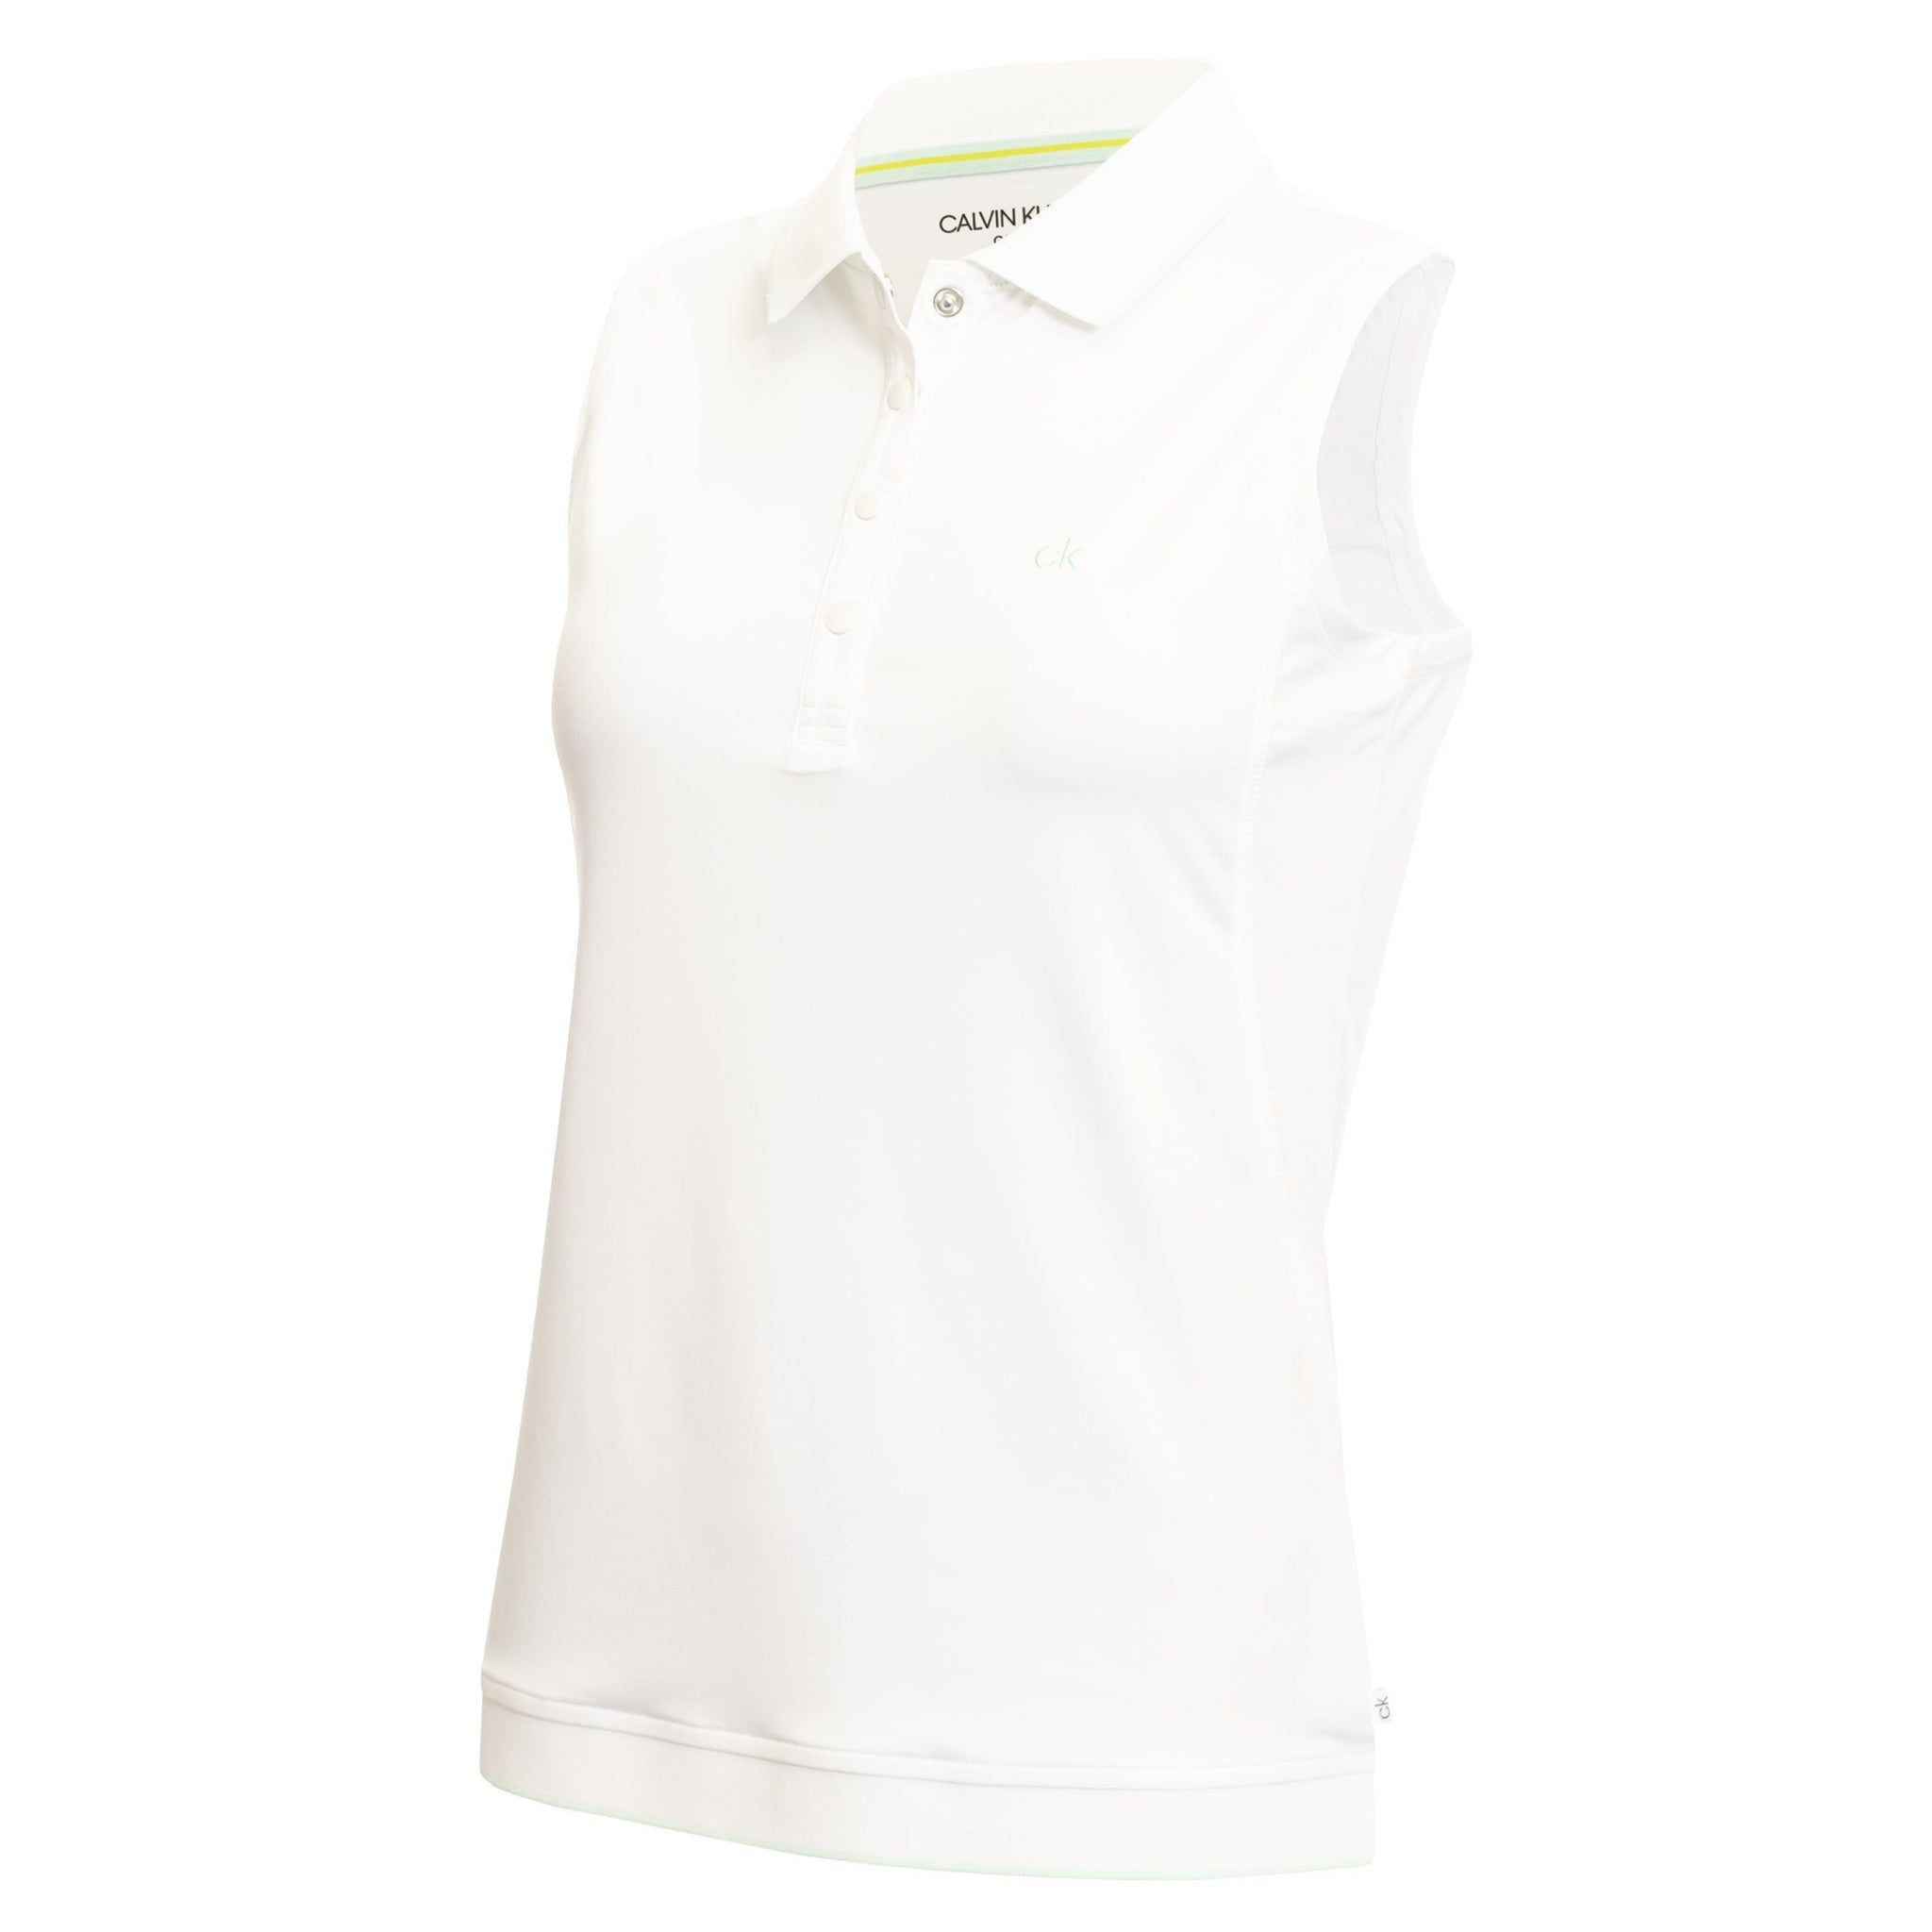 CALVIN KLEIN SOLANA S/LESS GOLF POLO SHIRT CK LADIES POLOS CALVIN KLEIN